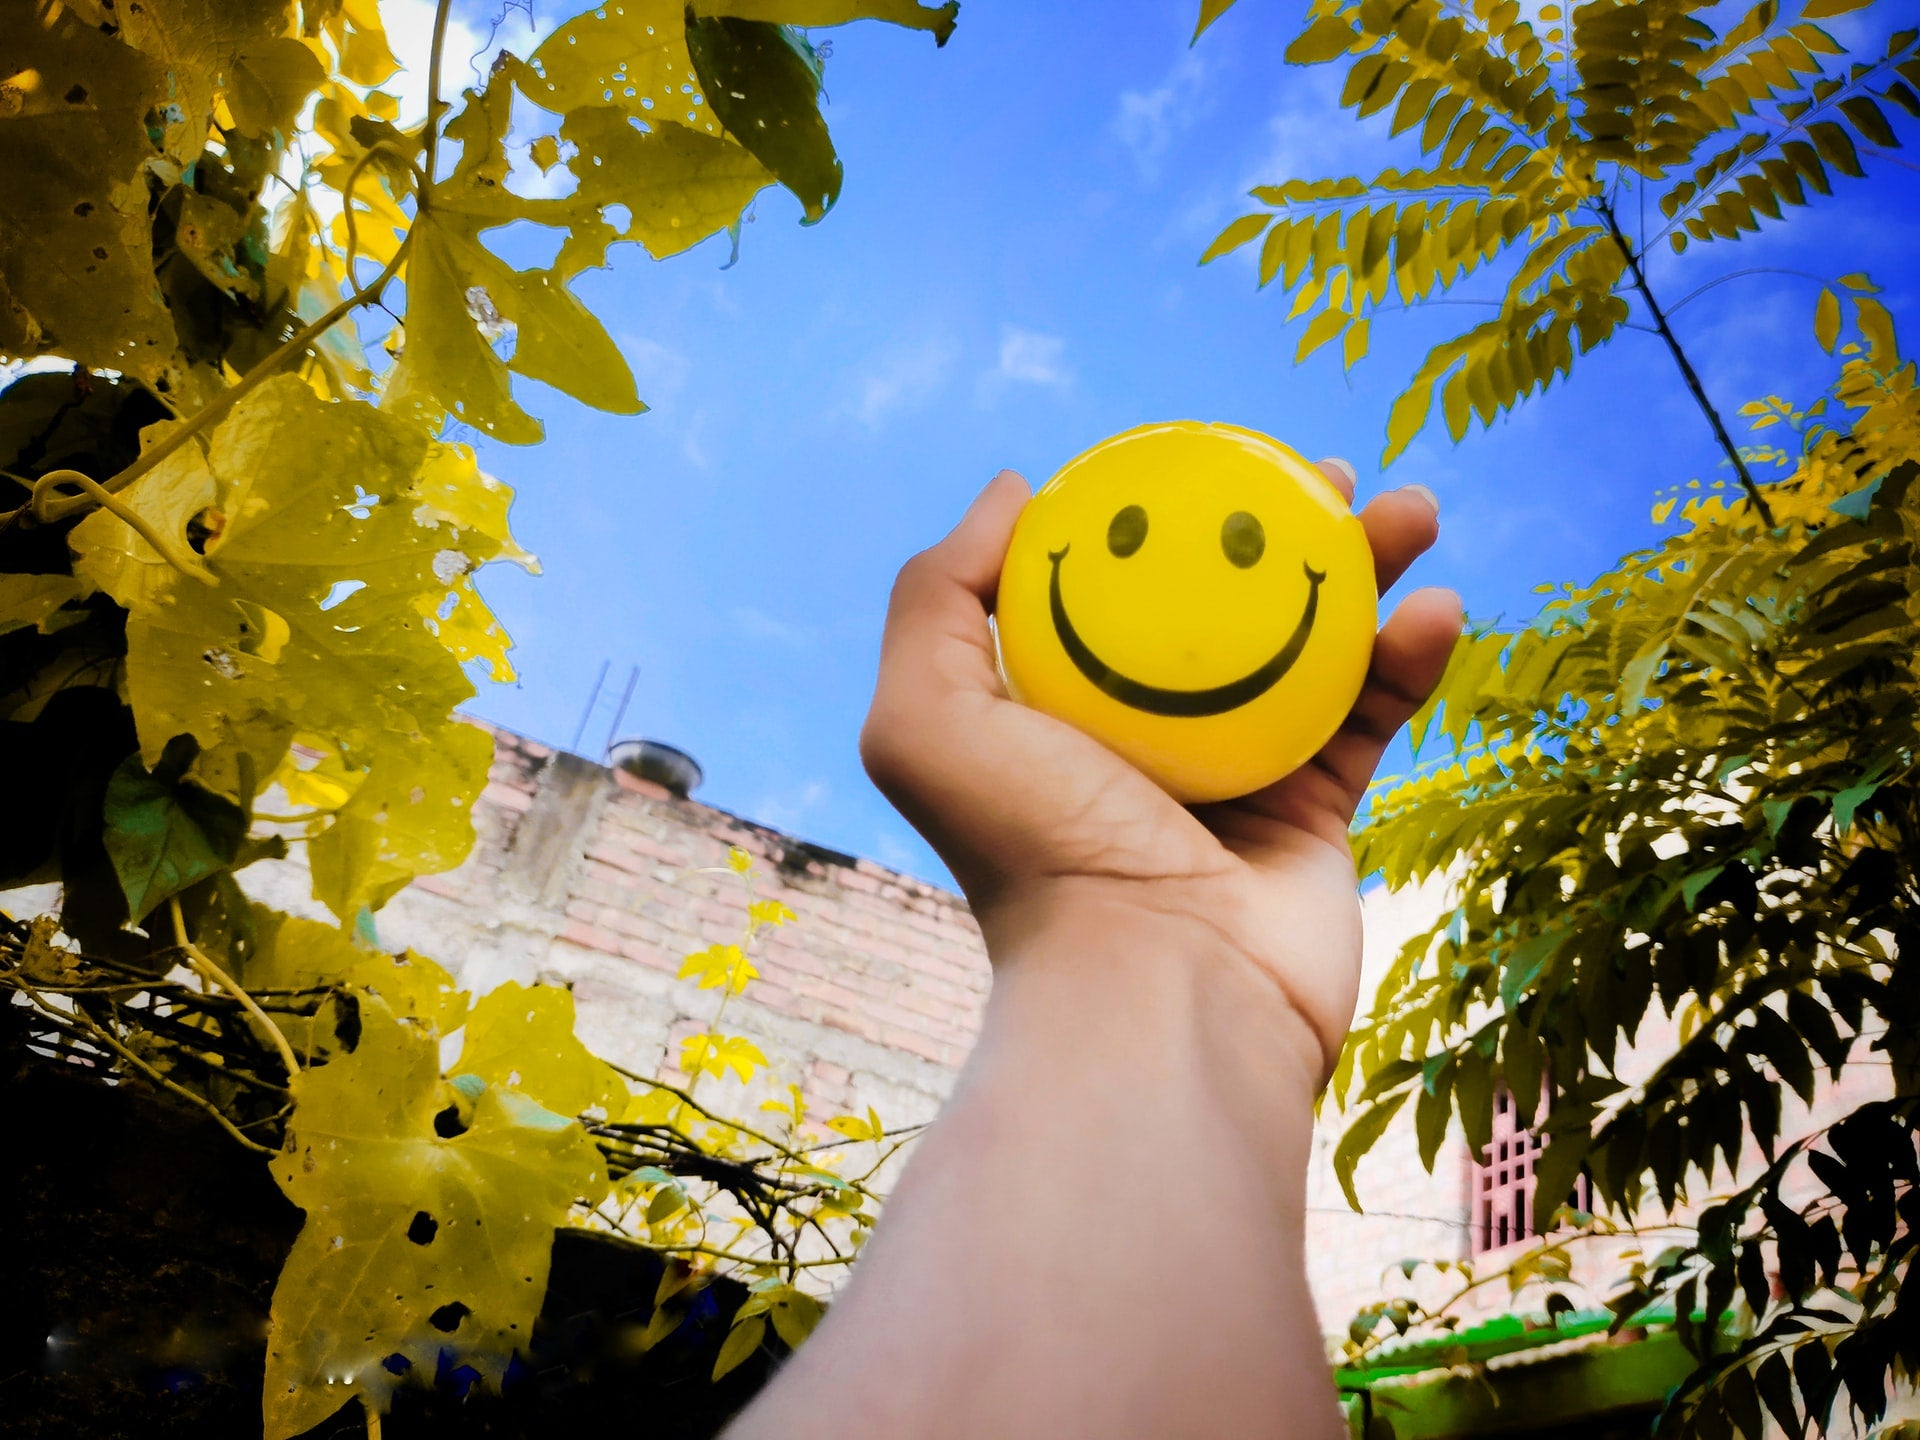 An outstretched hand holds a yellow ball with a smiley face on it